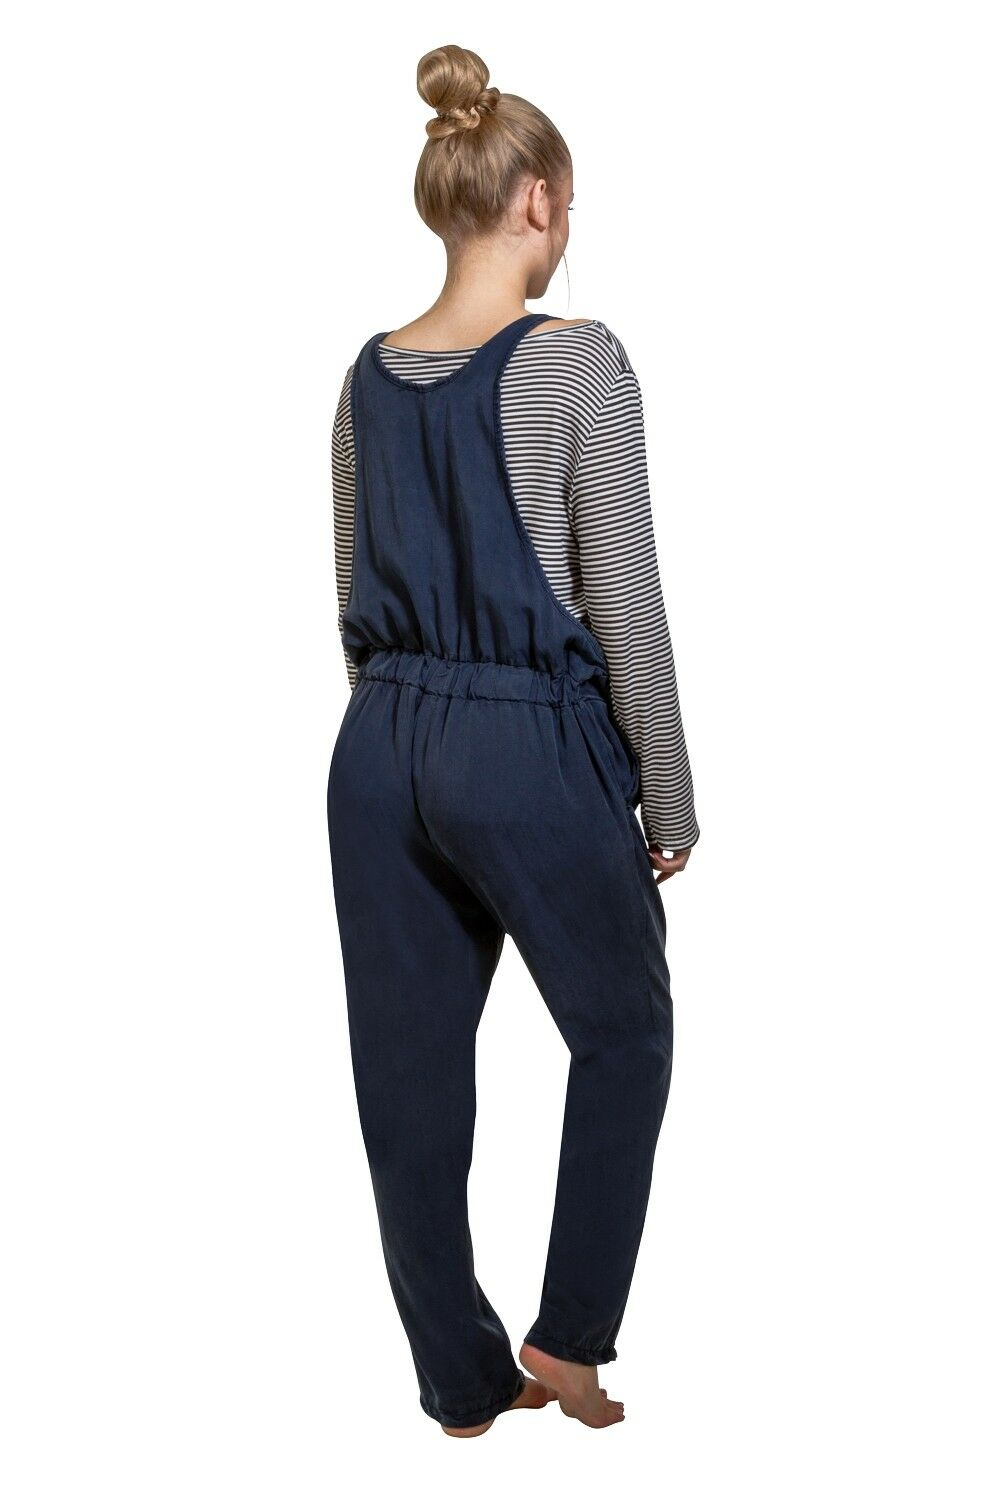 Full-length angled rear pose, wearing dark blue overall and black and white hooped long-sleeved t-shirt.